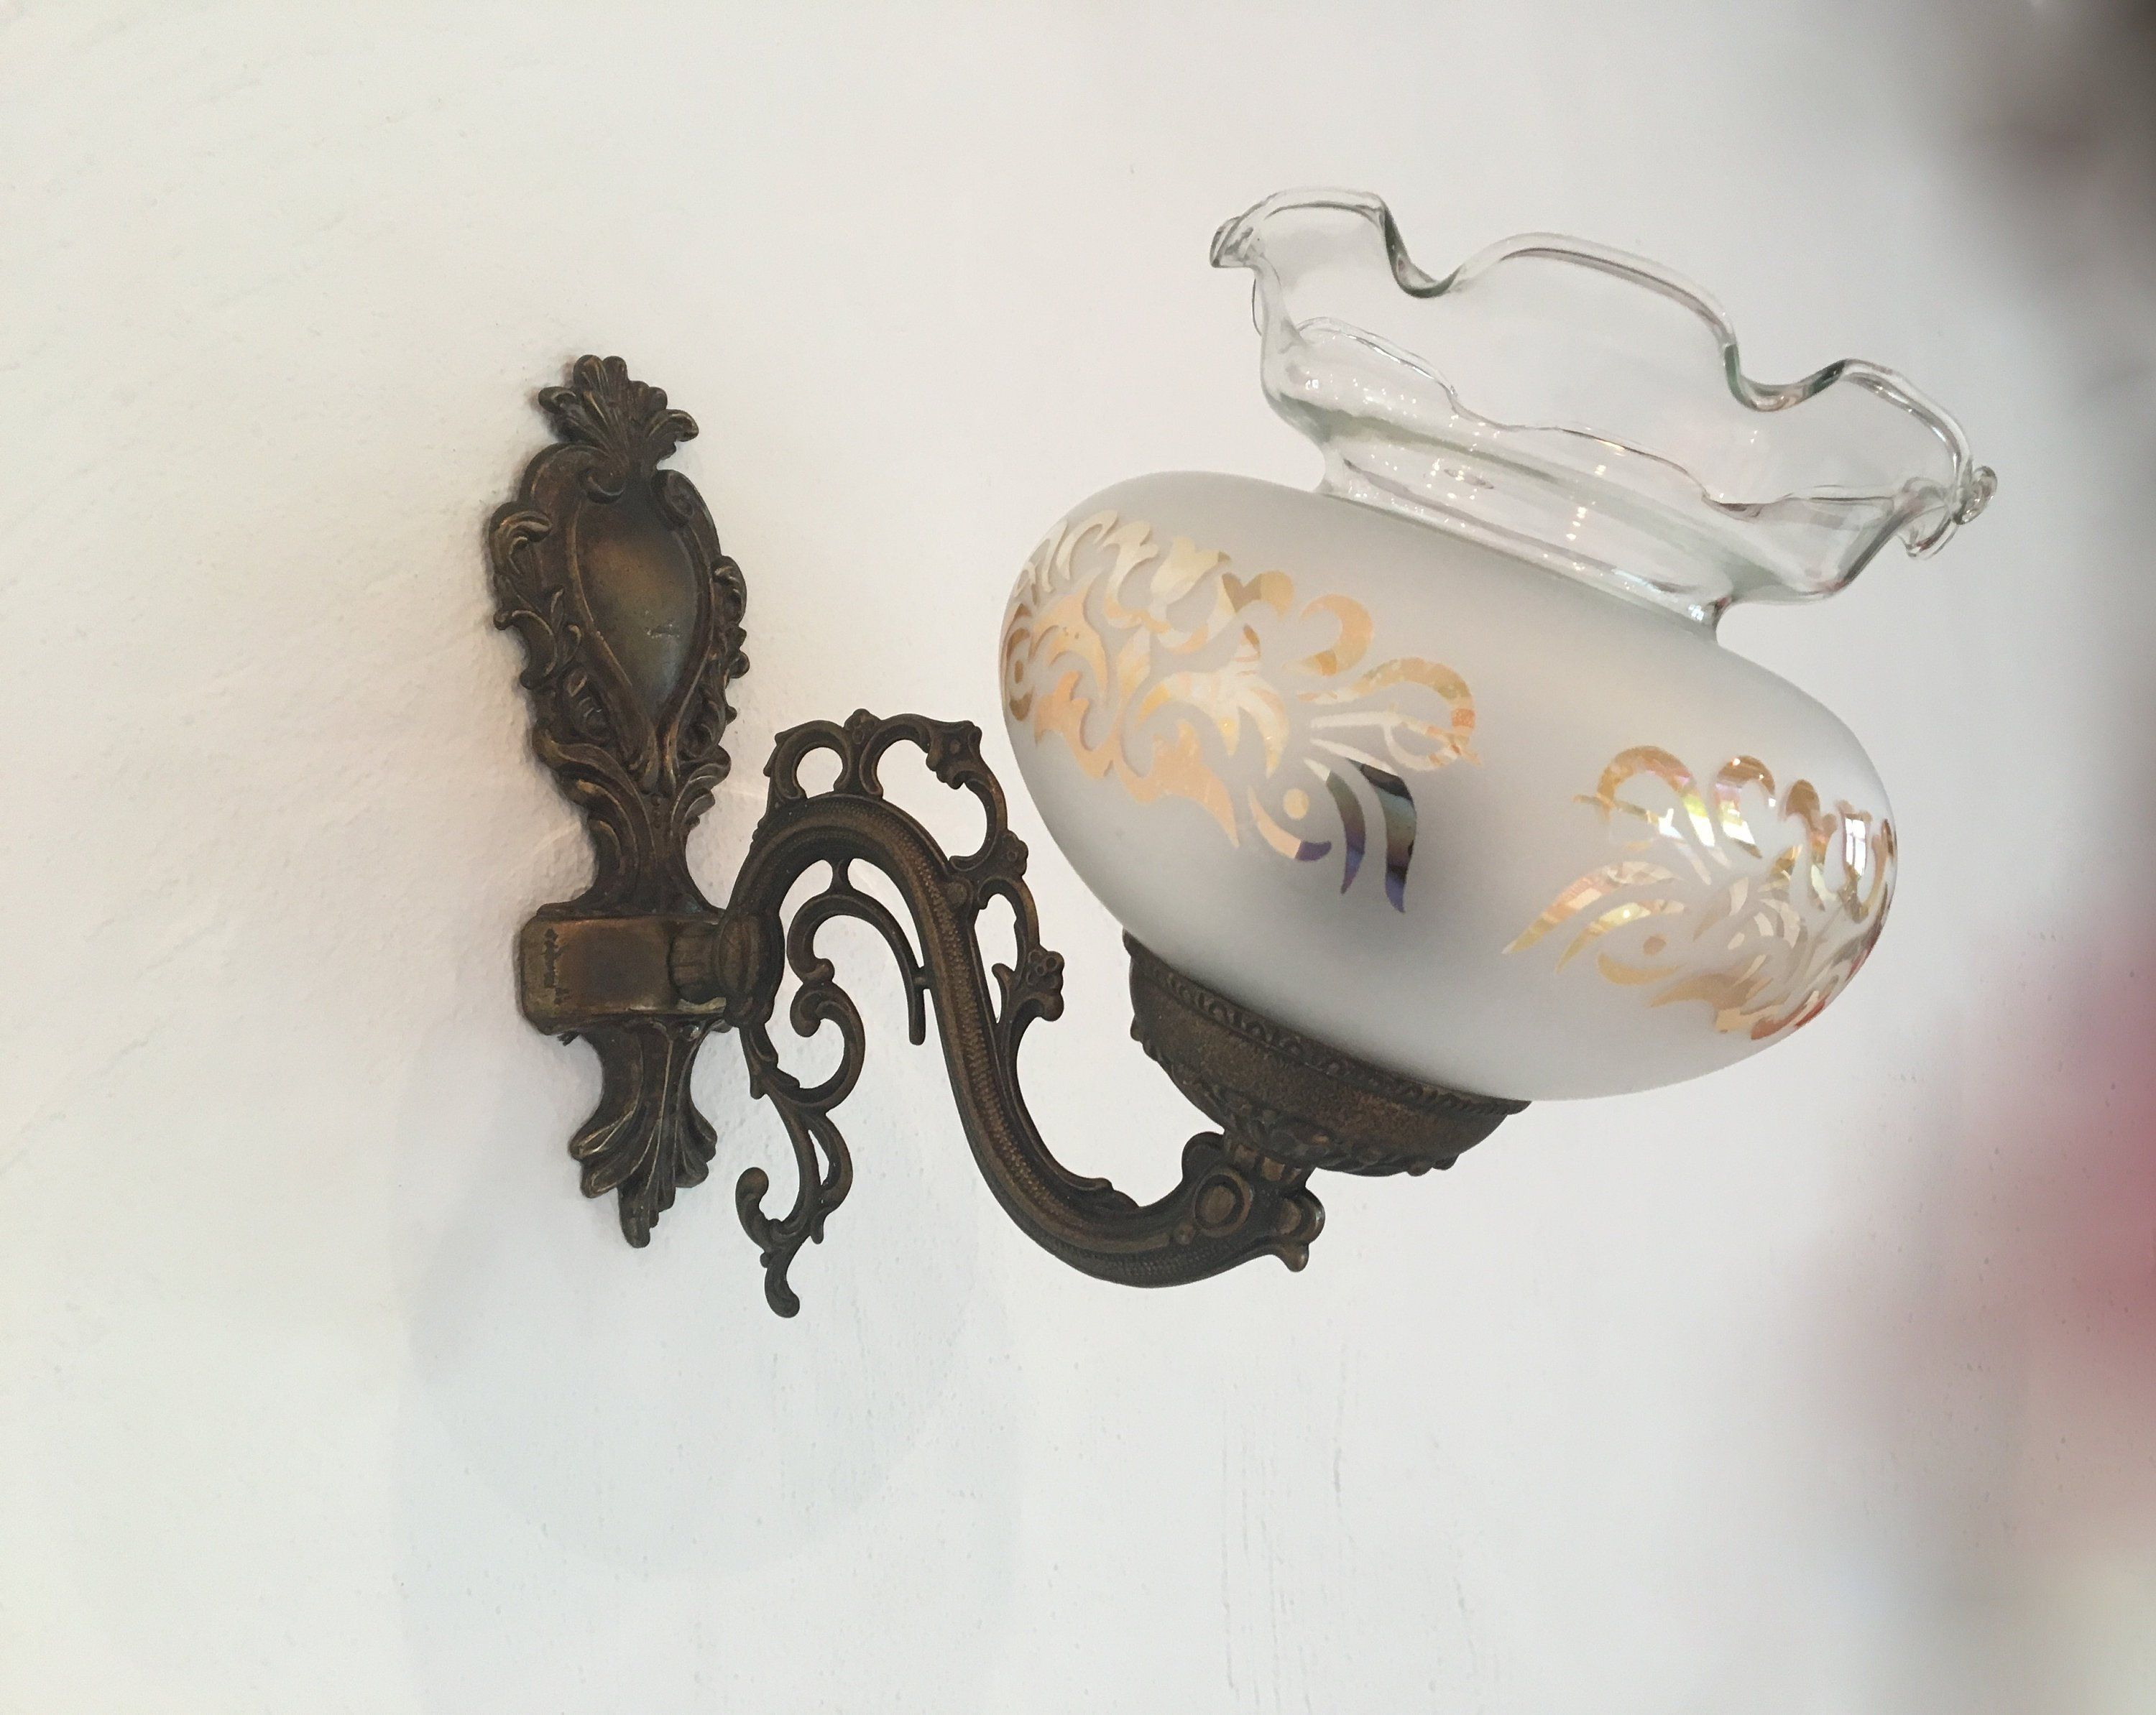 Antique Wall Lamp Brass Lamp Glass Globe Wall Vintage Unit Vintage